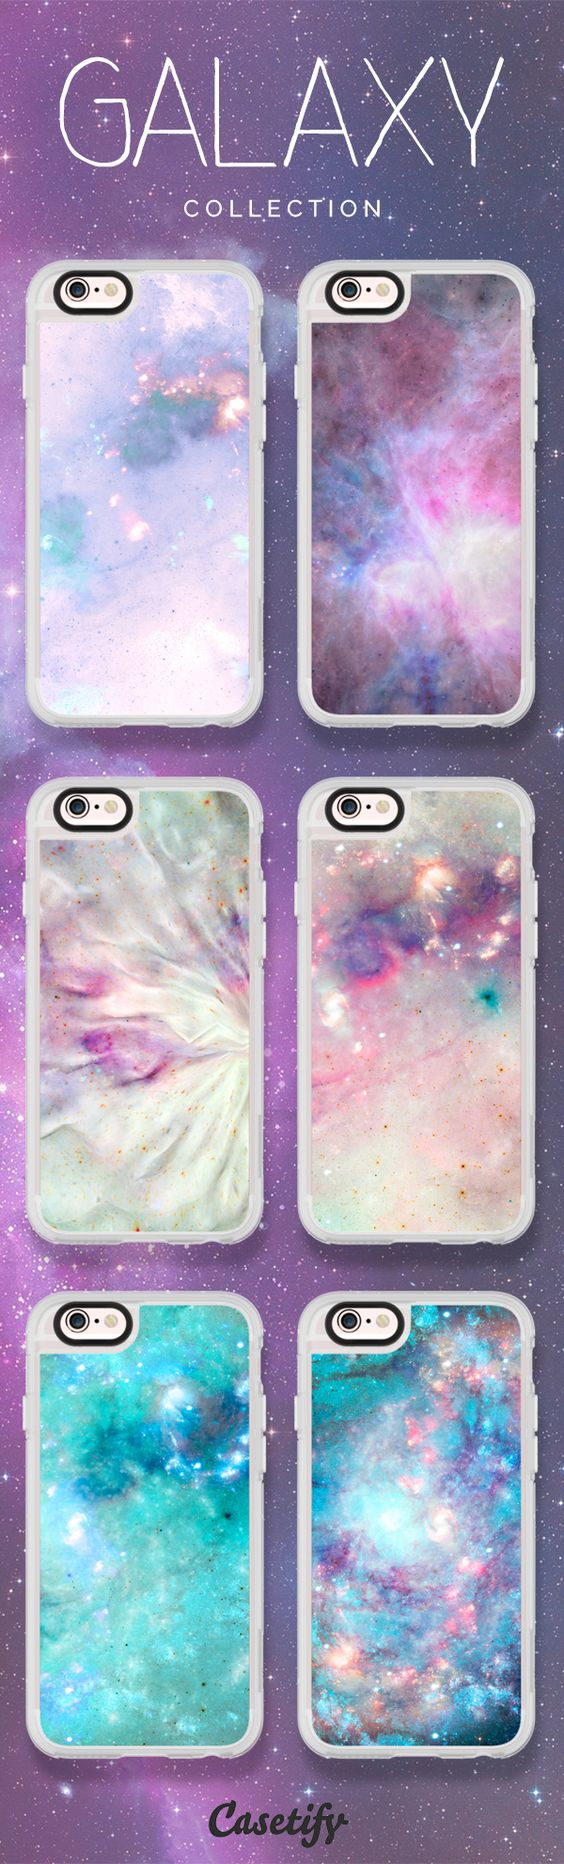 Take a look at these cases featuring galaxies designed by @barruf now! Explore it with the space illustrartion ! >>> https://www.casetify.com/artworks/bbbhZM6Zuy | @casetify